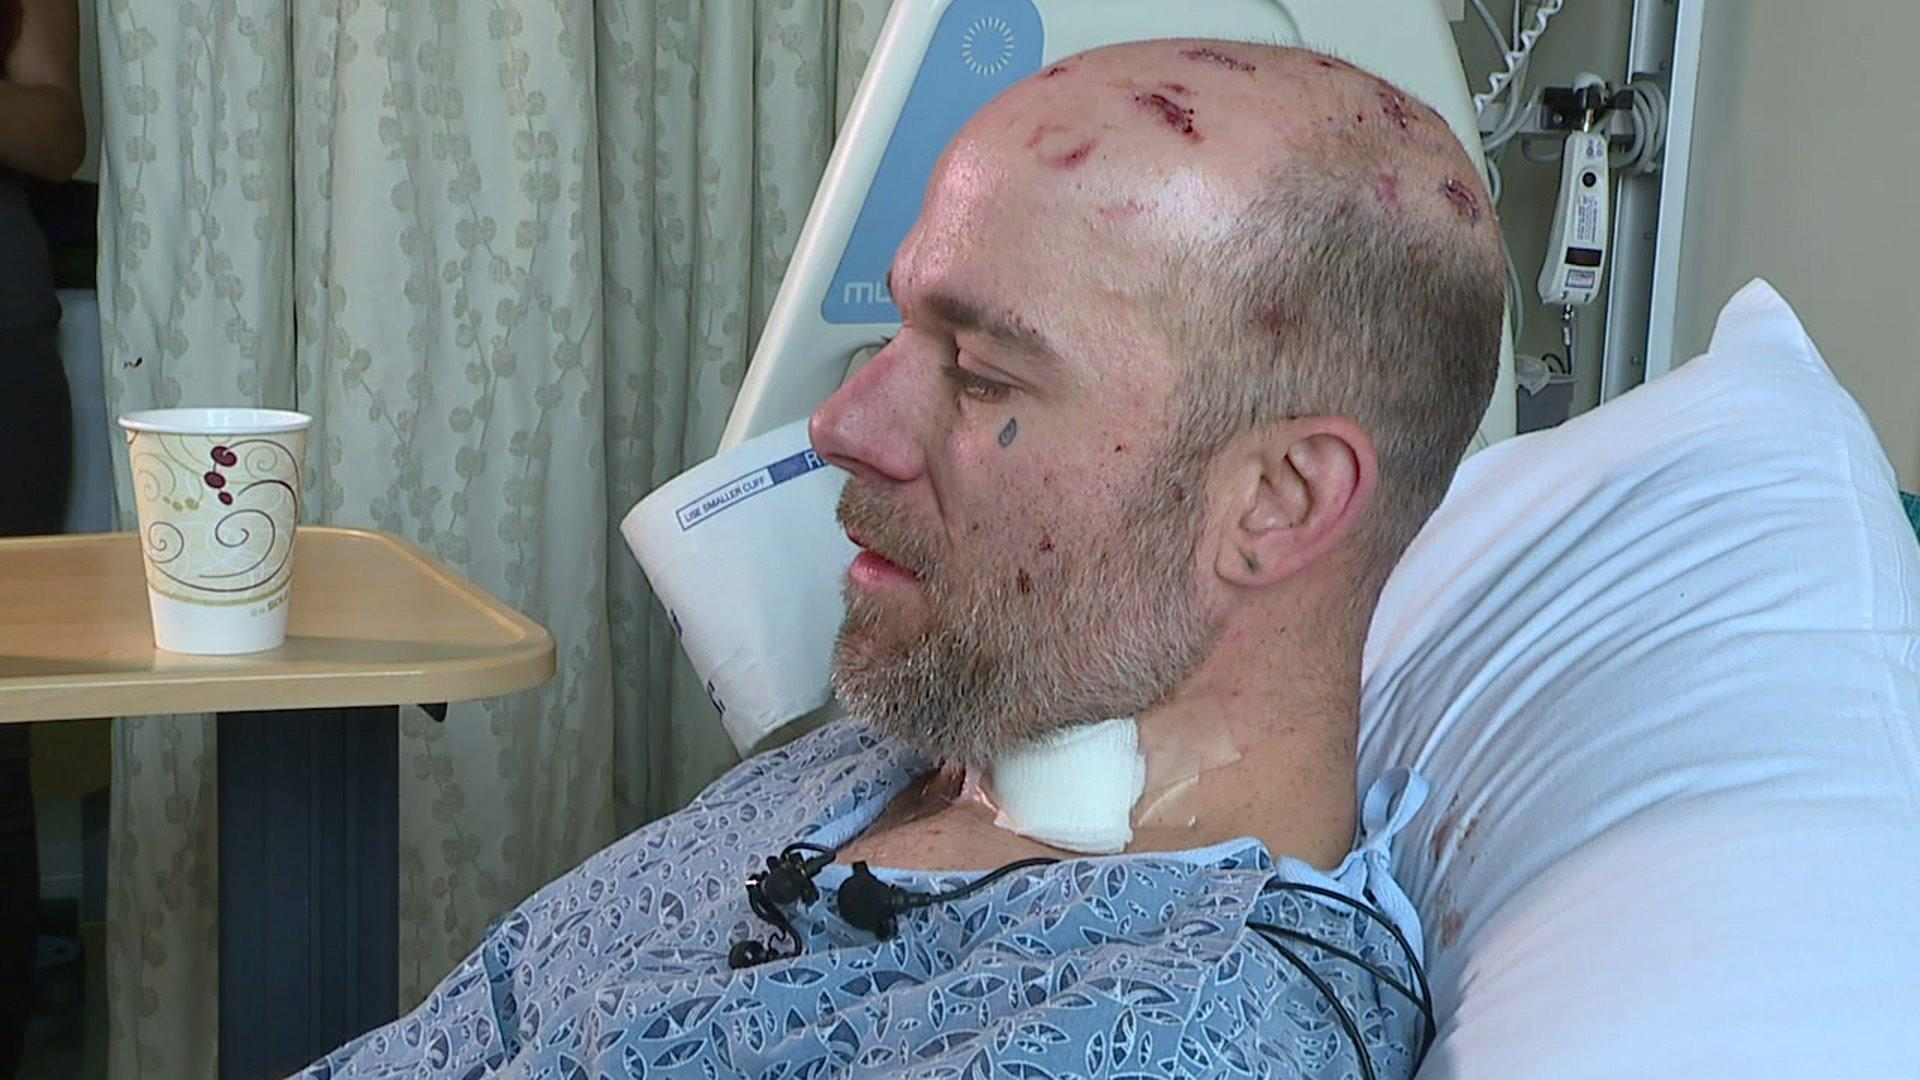 Transient Man Attacked with Machete, Chain in Vicious Assault